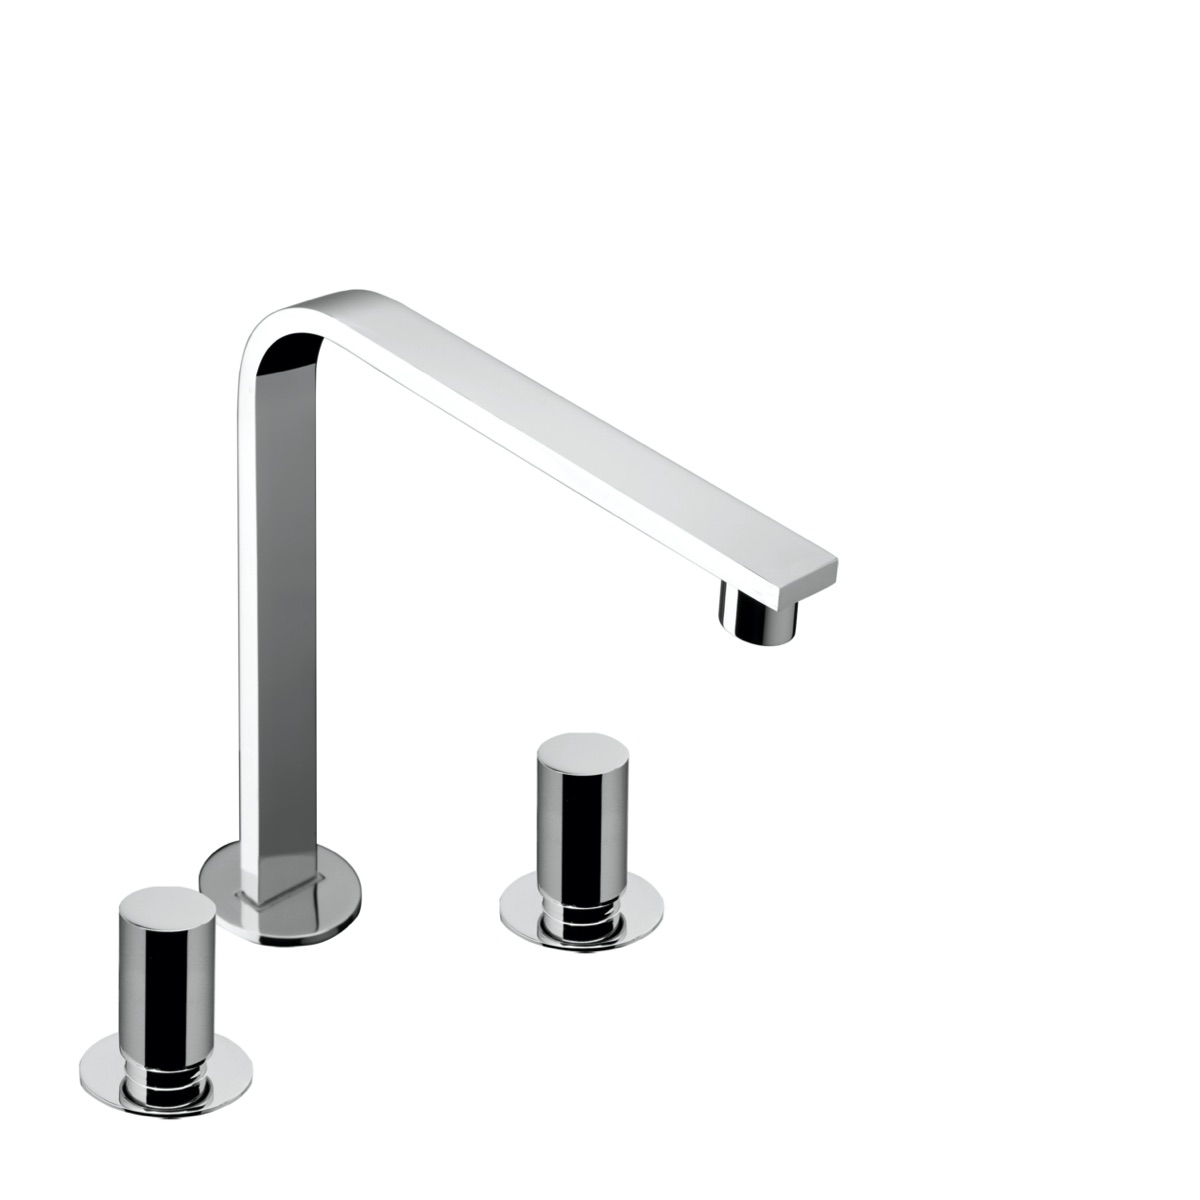 3 hole deck mounted basin mixer with 243 mm spout with waste